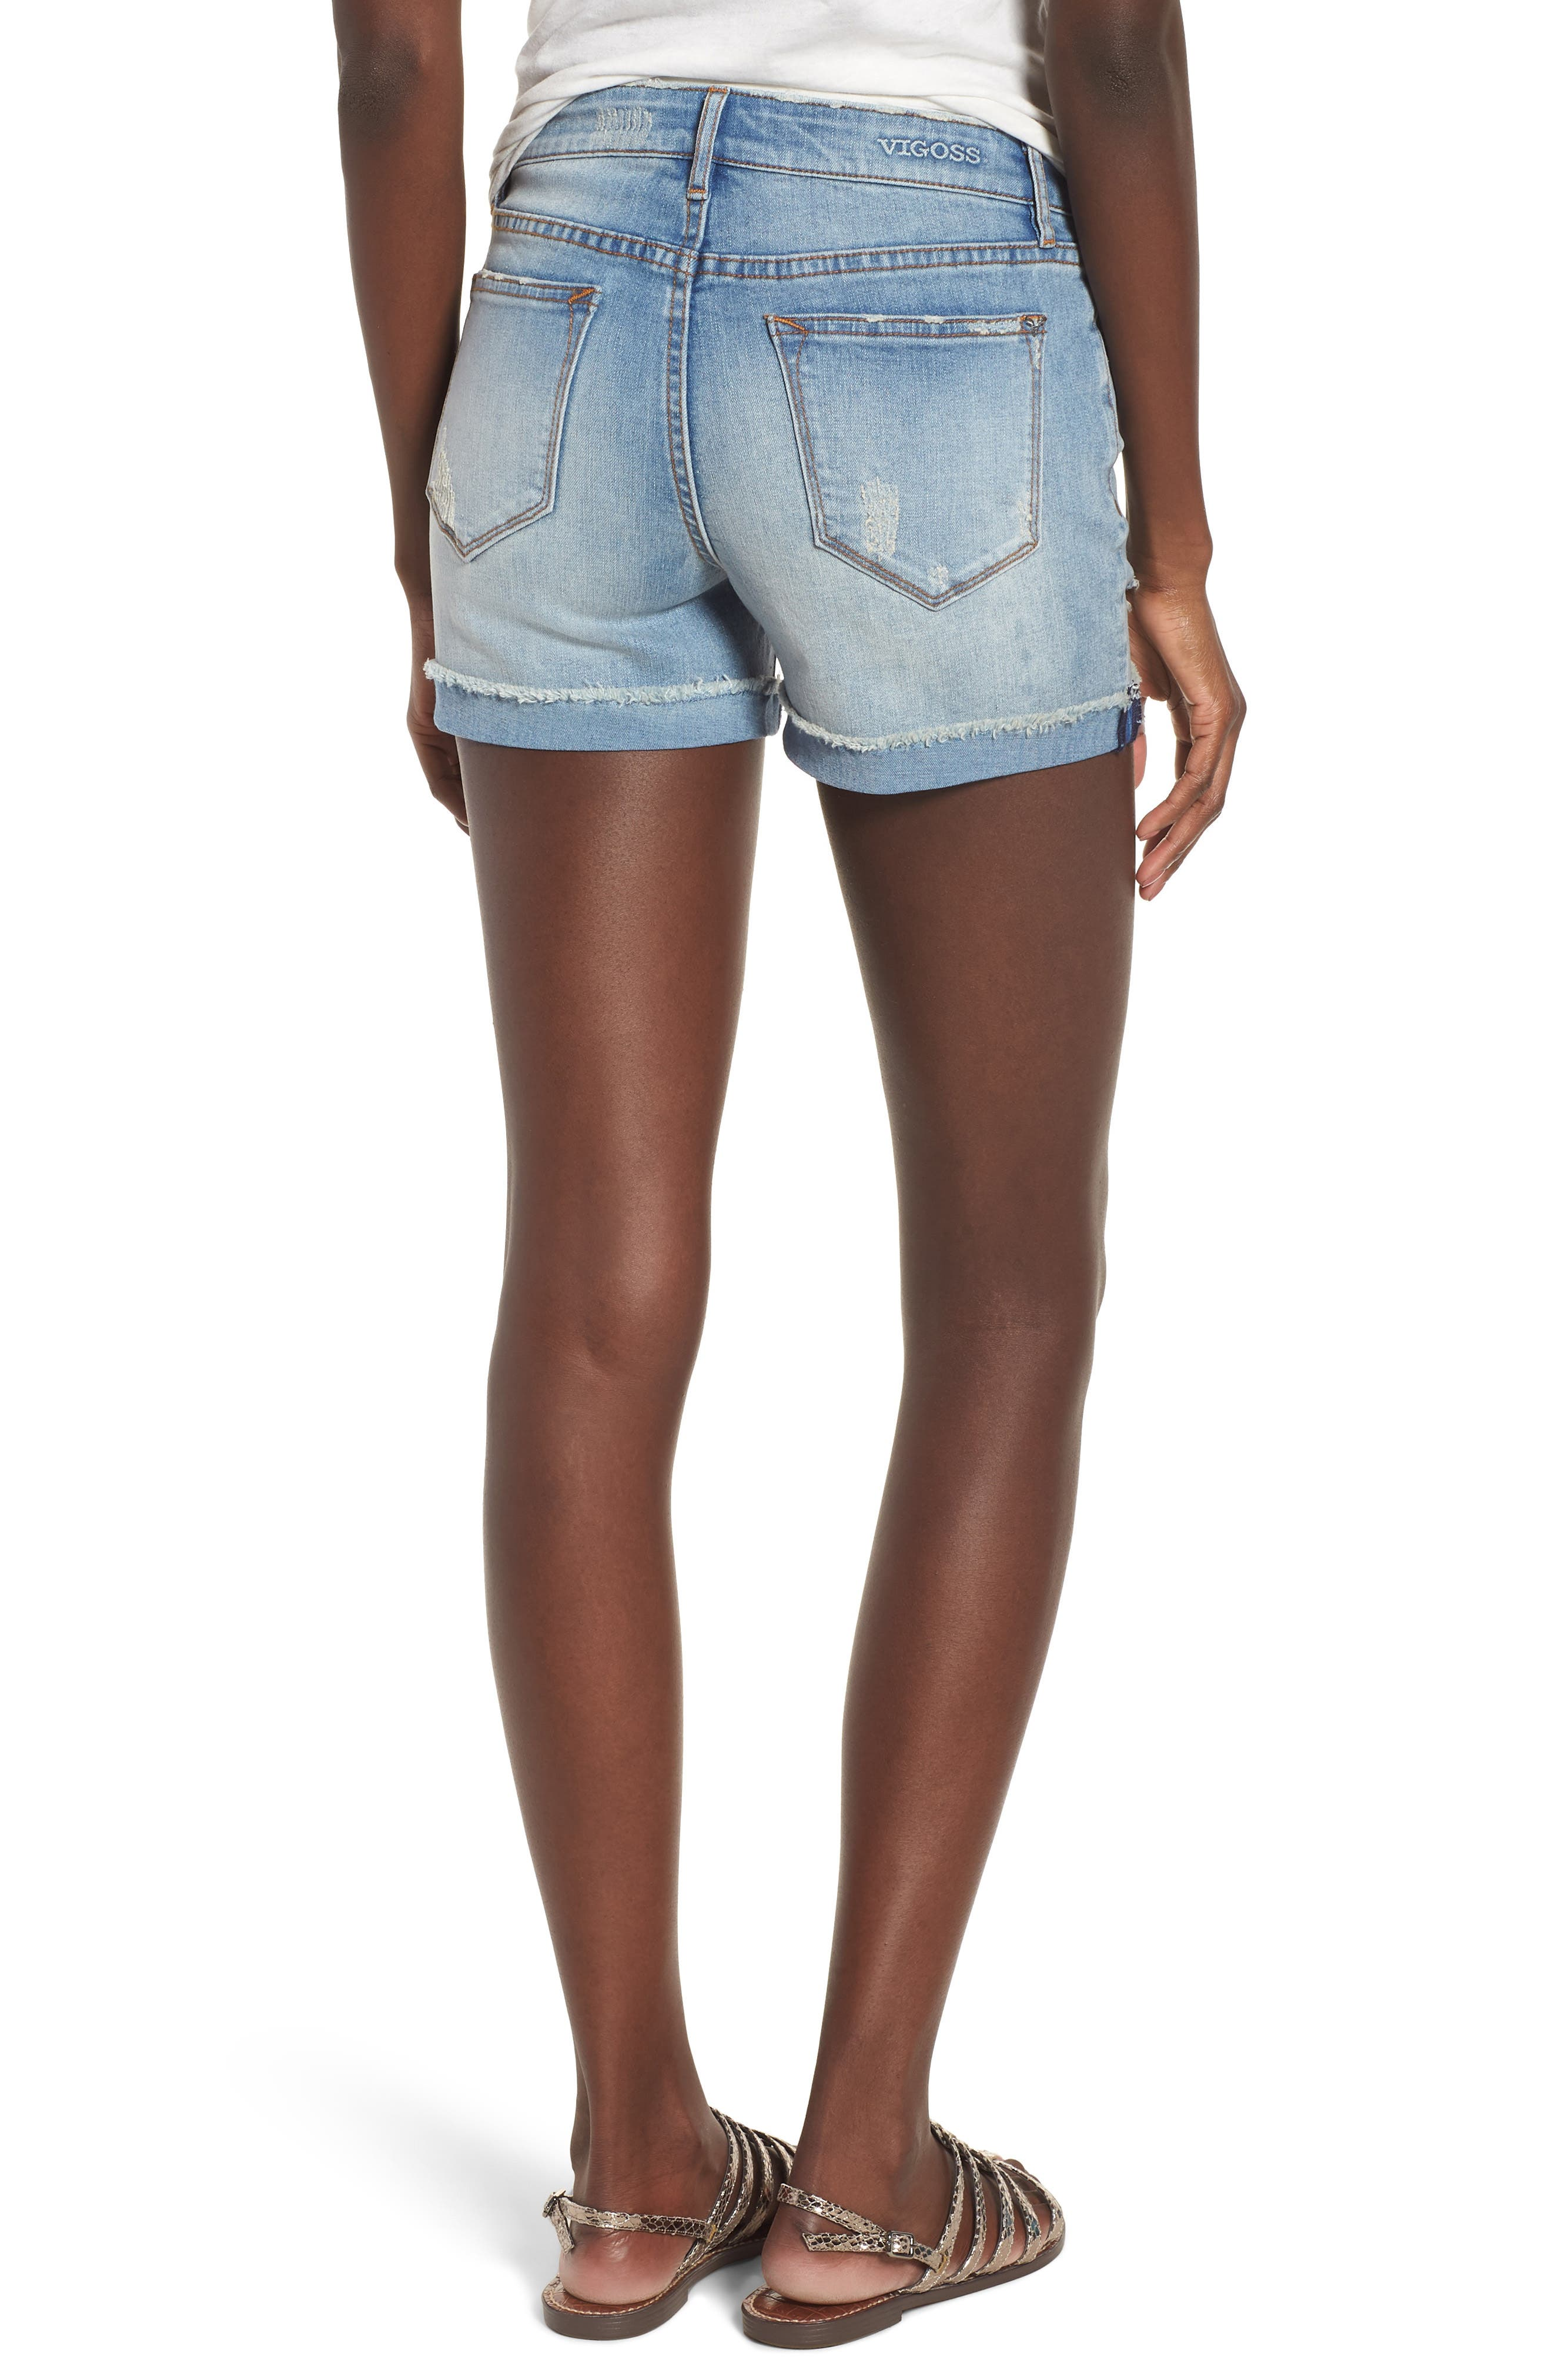 Marley Denim Shorts,                             Alternate thumbnail 2, color,                             461